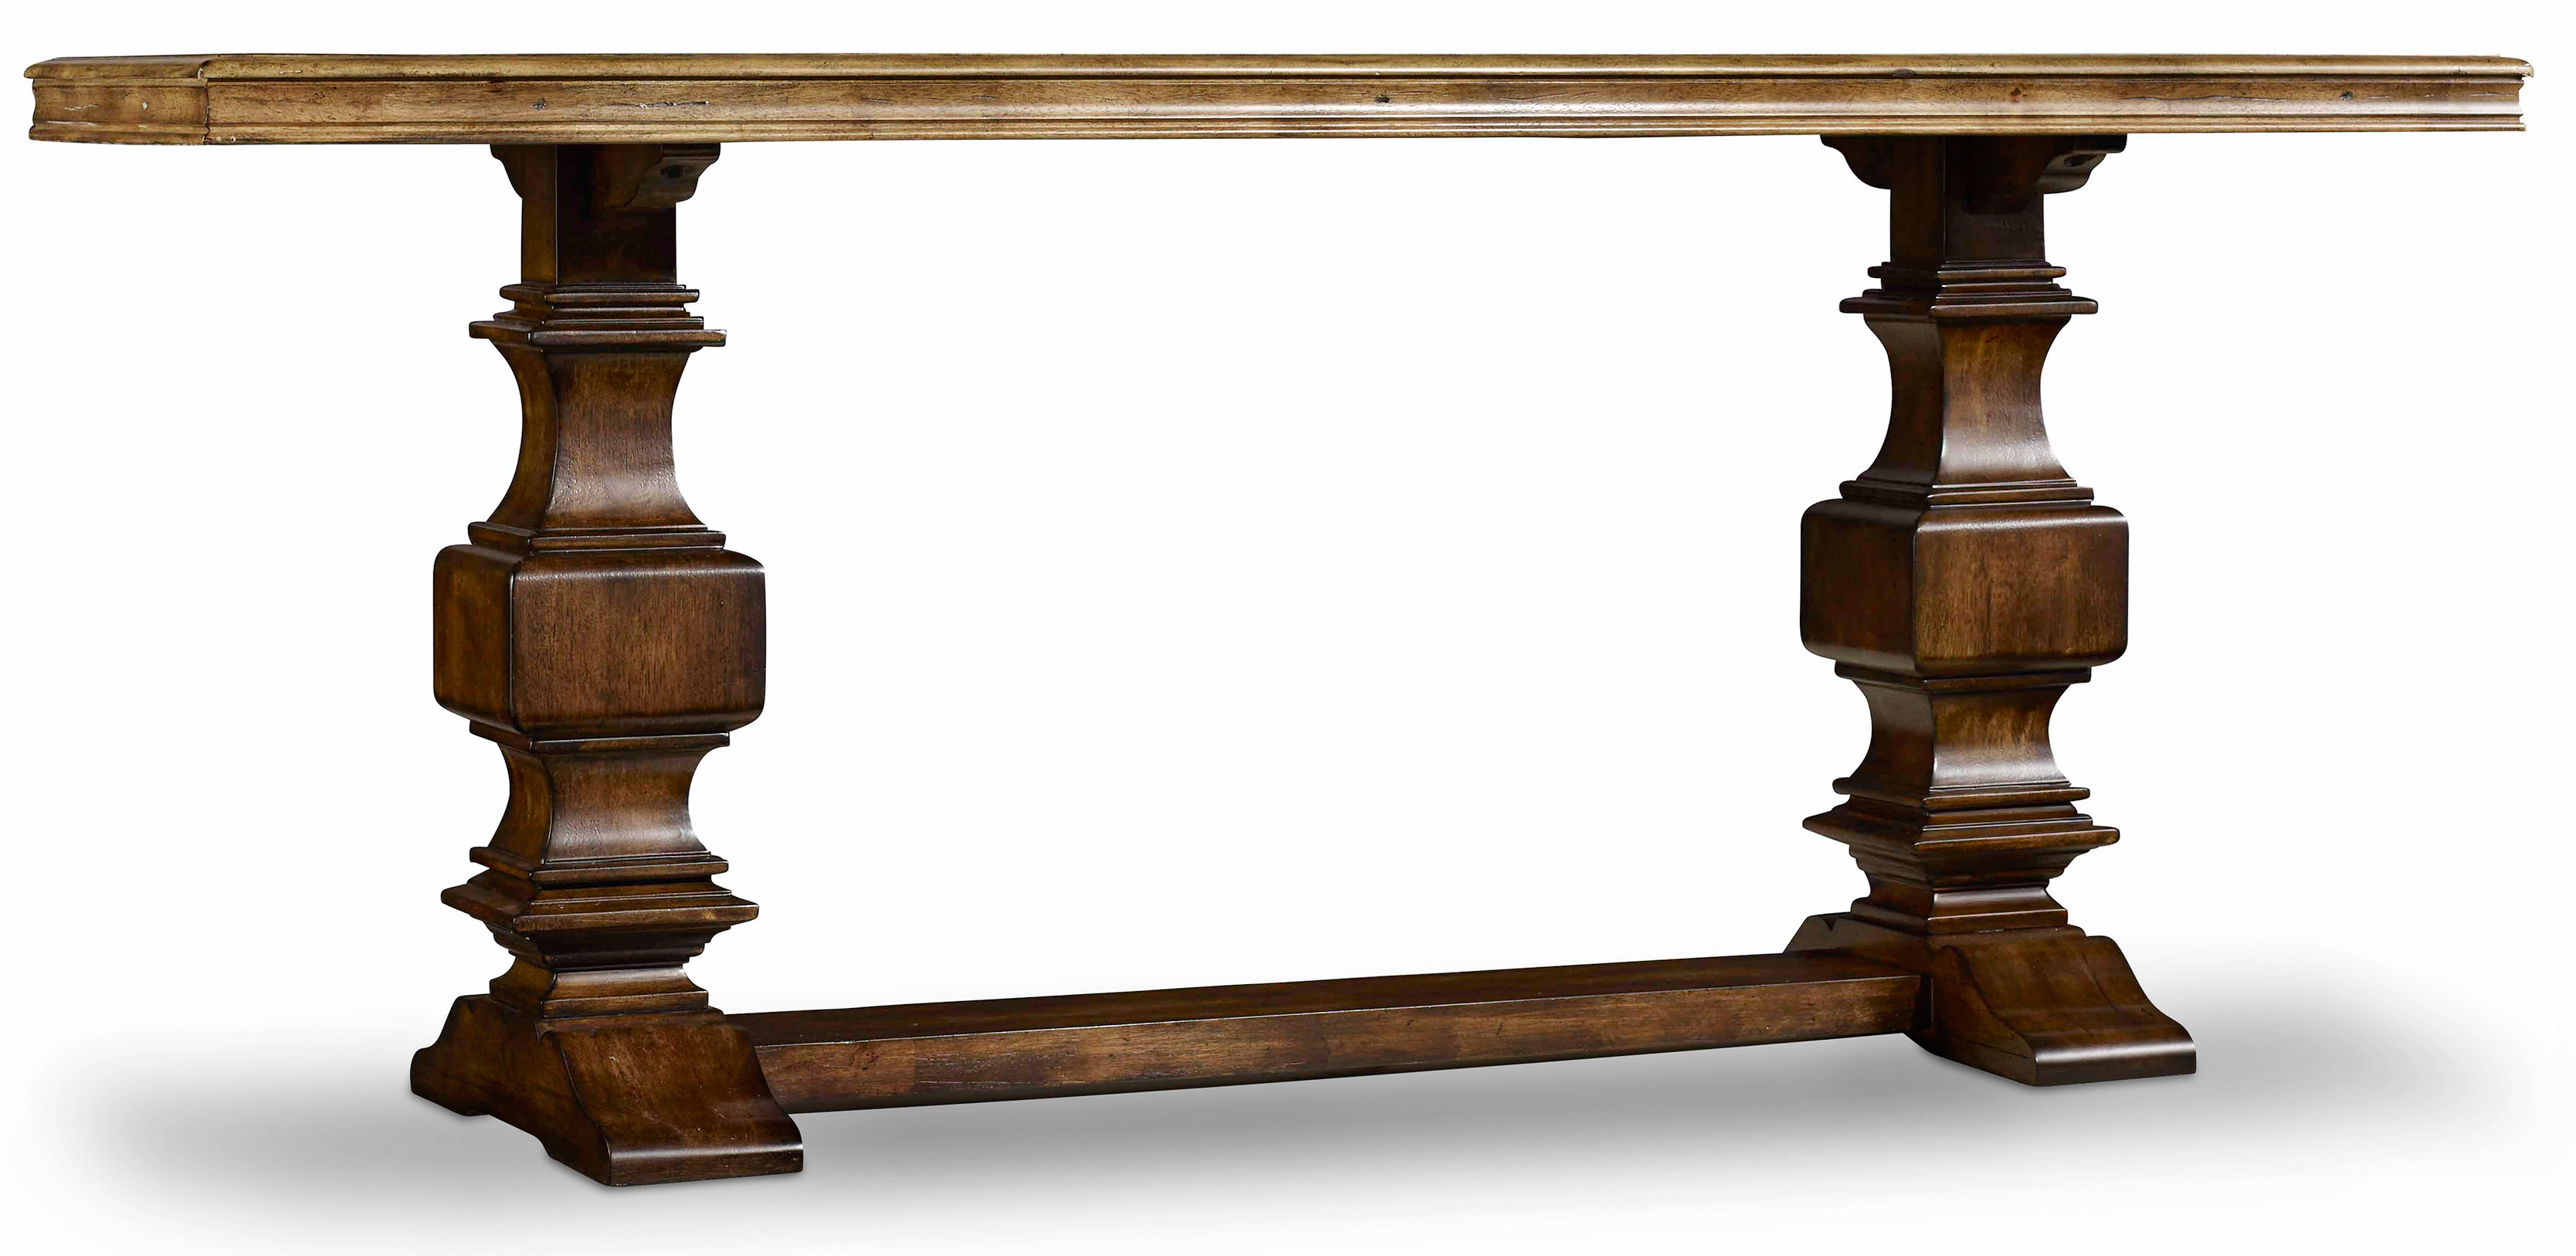 Hooker Furniture Archivist 5447 85001a Console Table With